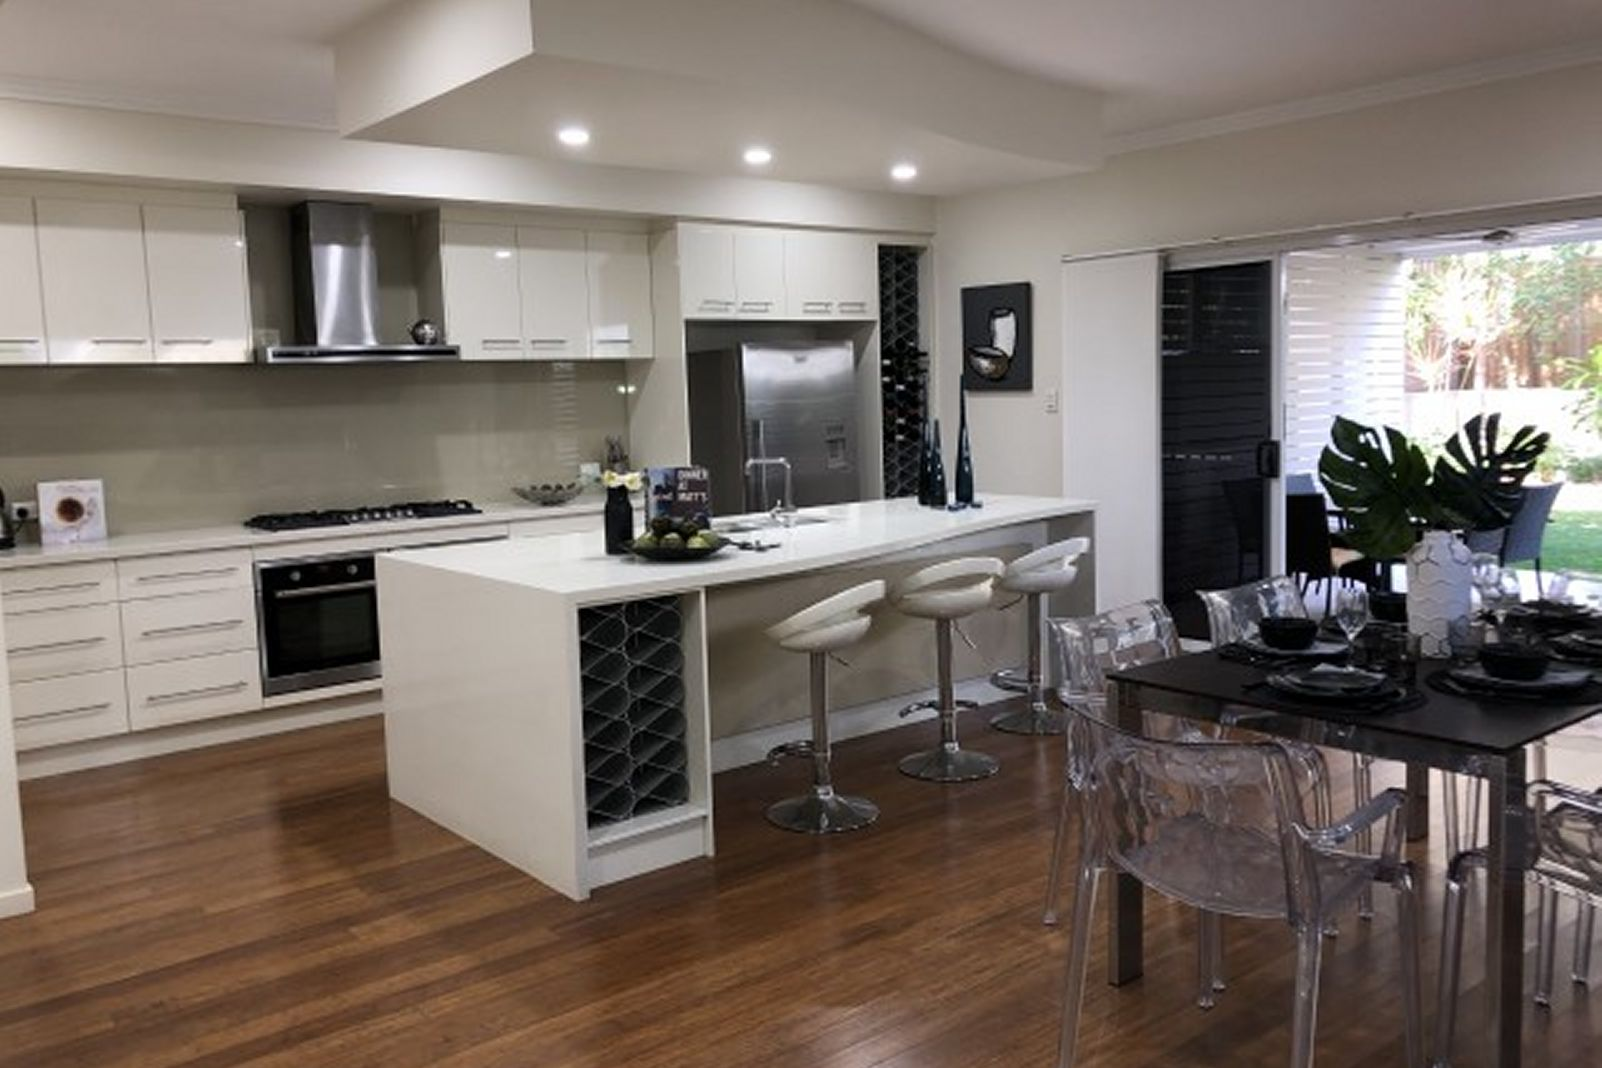 Coorparoo Property Part Style